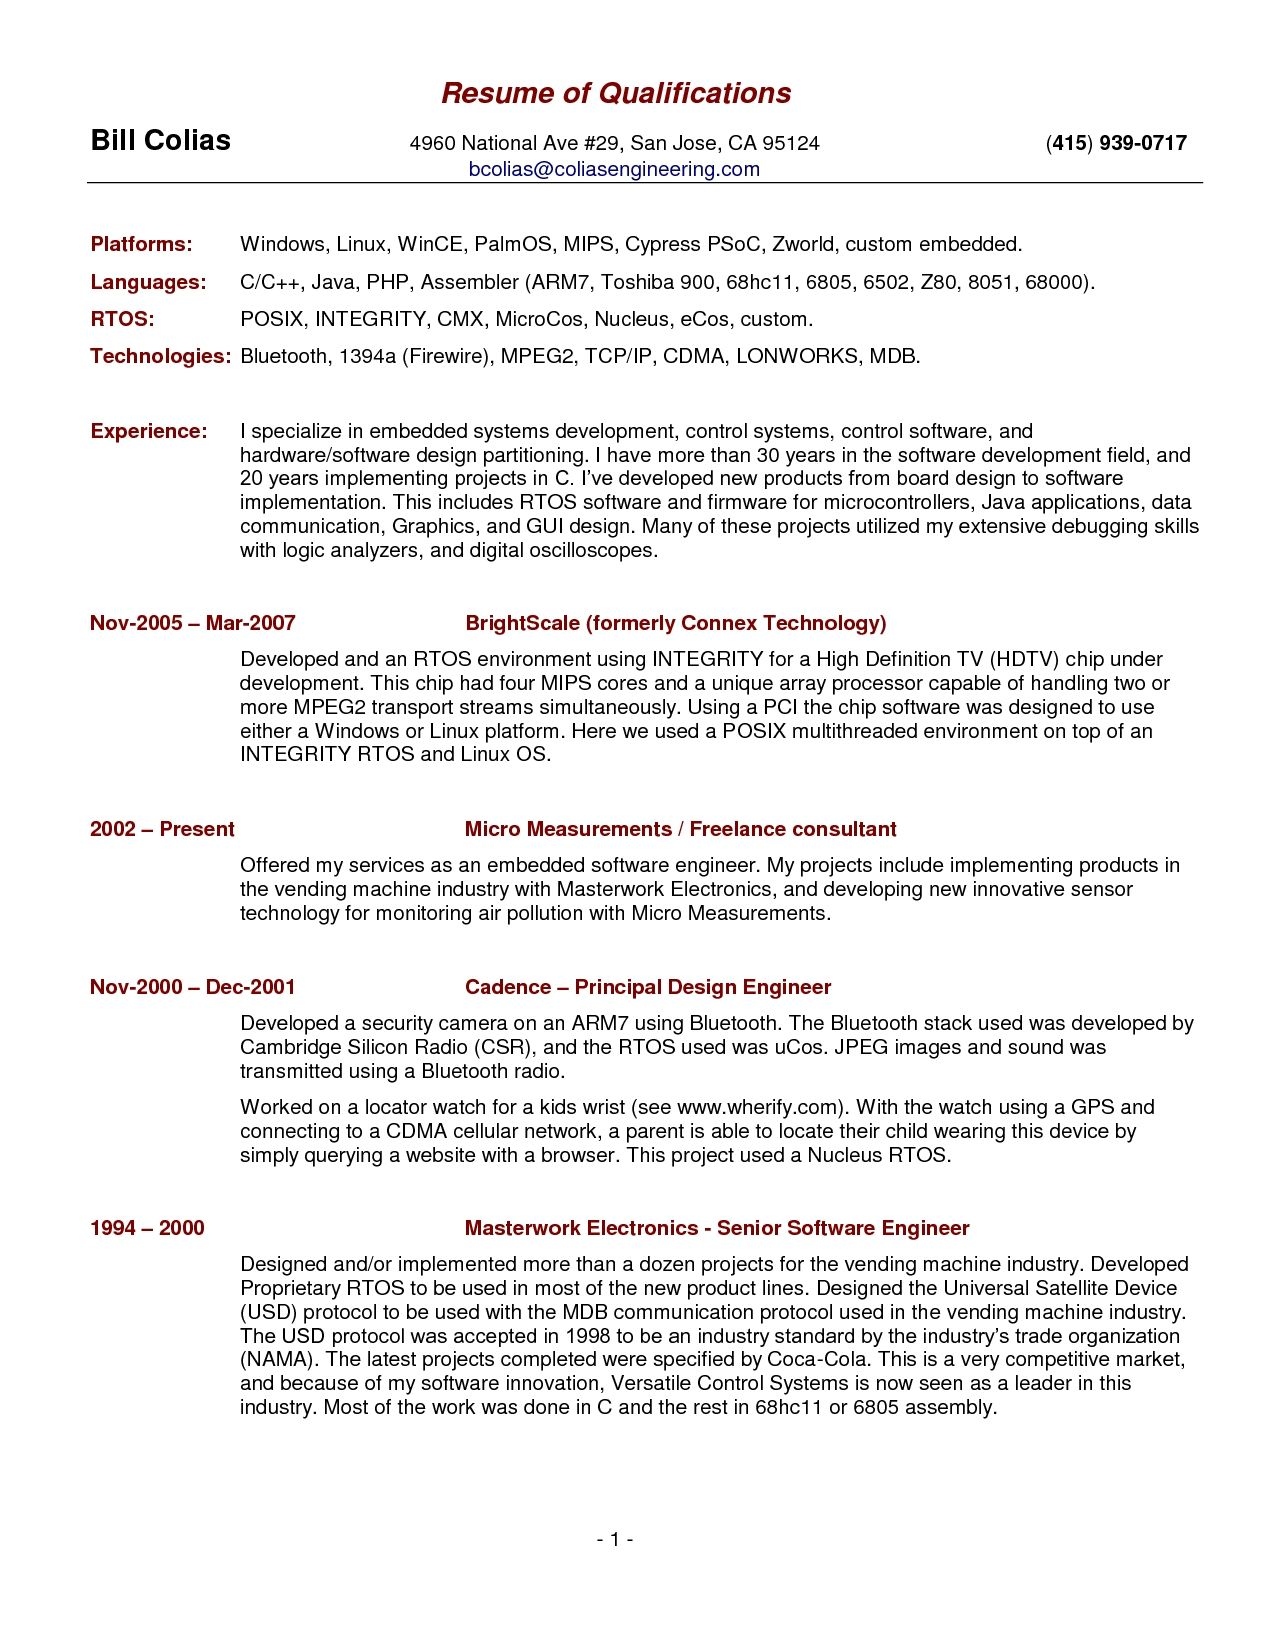 Skills And Abilities On A Resume Qualifications For A Resume Examples 7F8Ea3A2A New Resume Skills